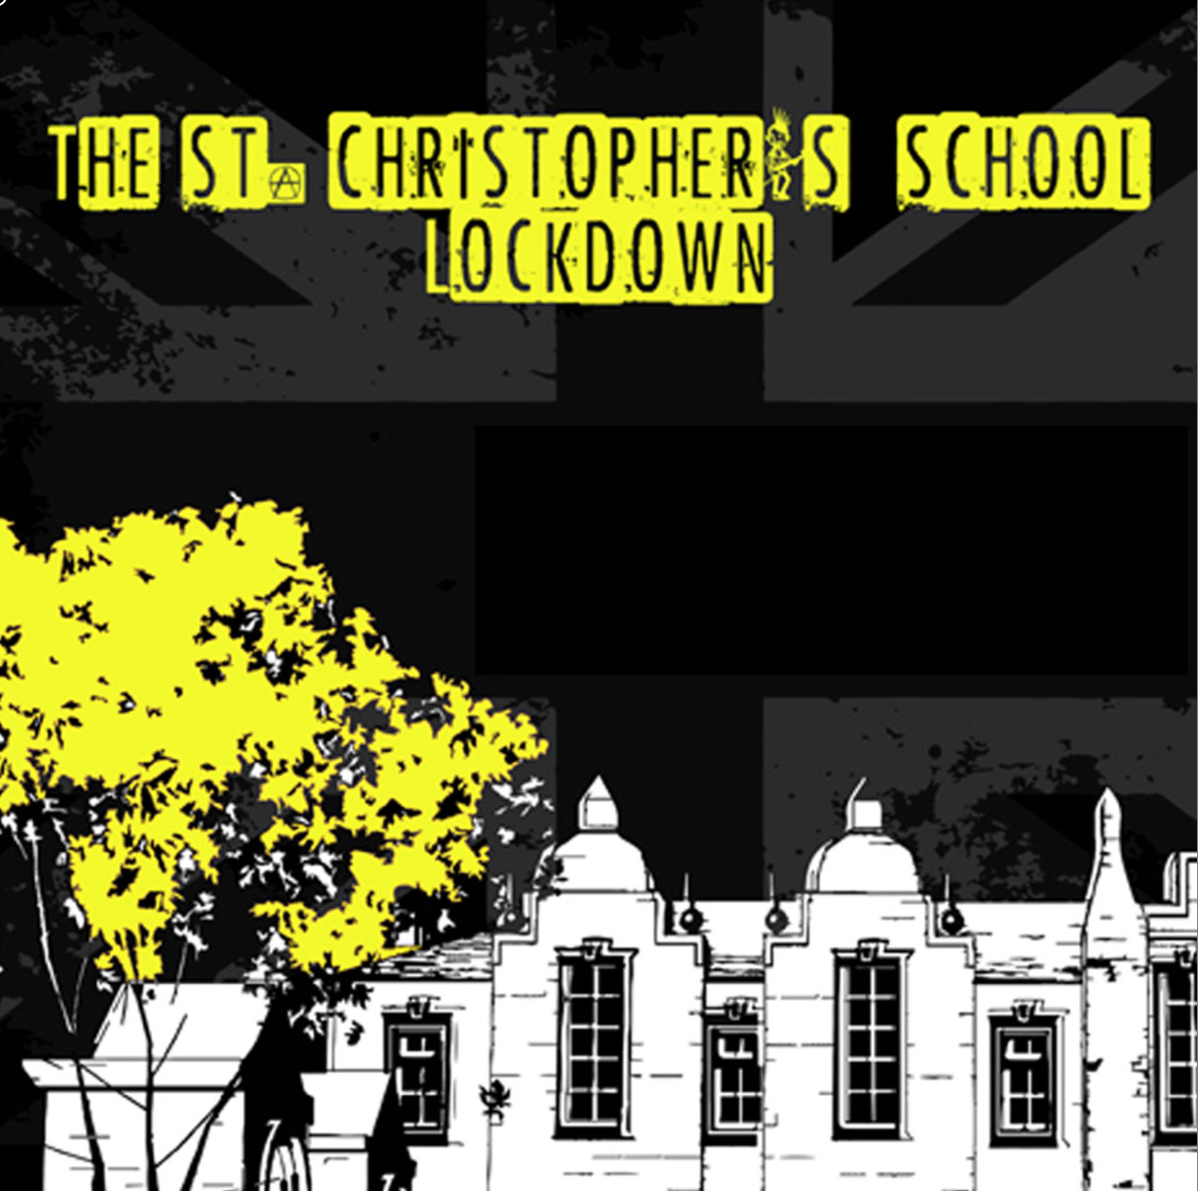 Soundtrack of The St. Christophers's School Lockdown